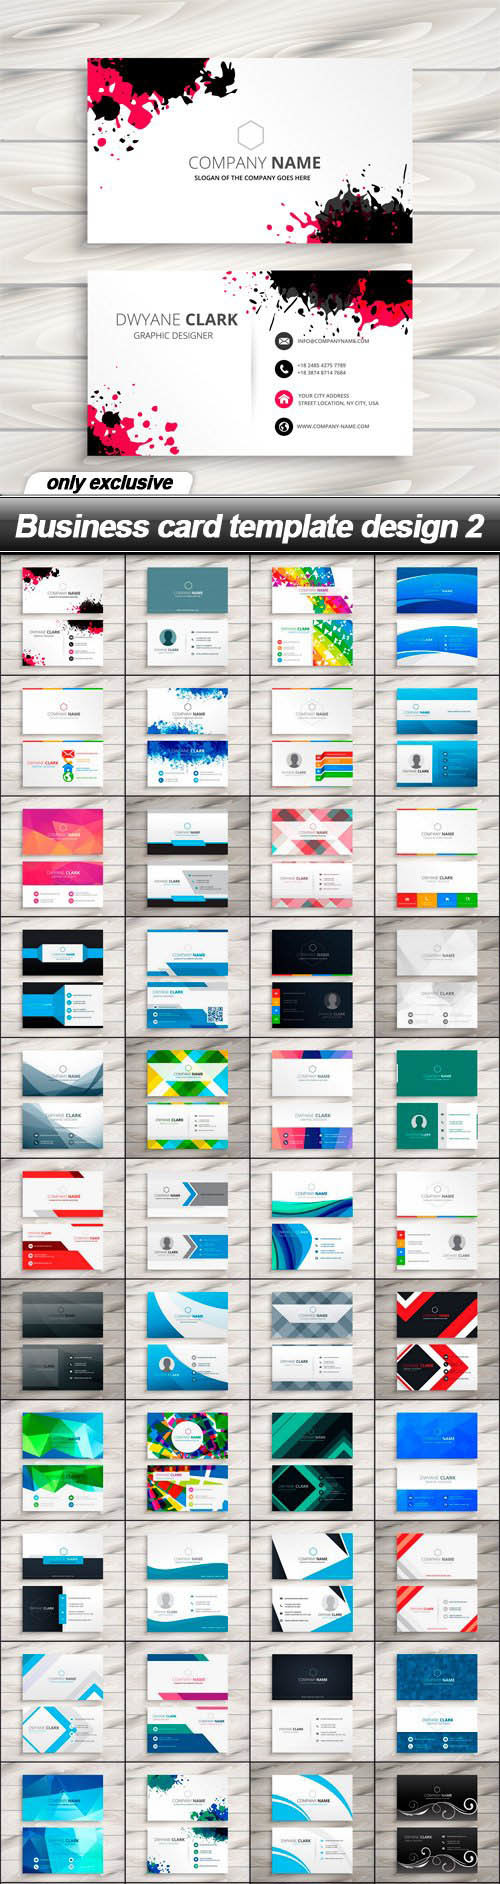 Business card vector template design 2 – 48 Files